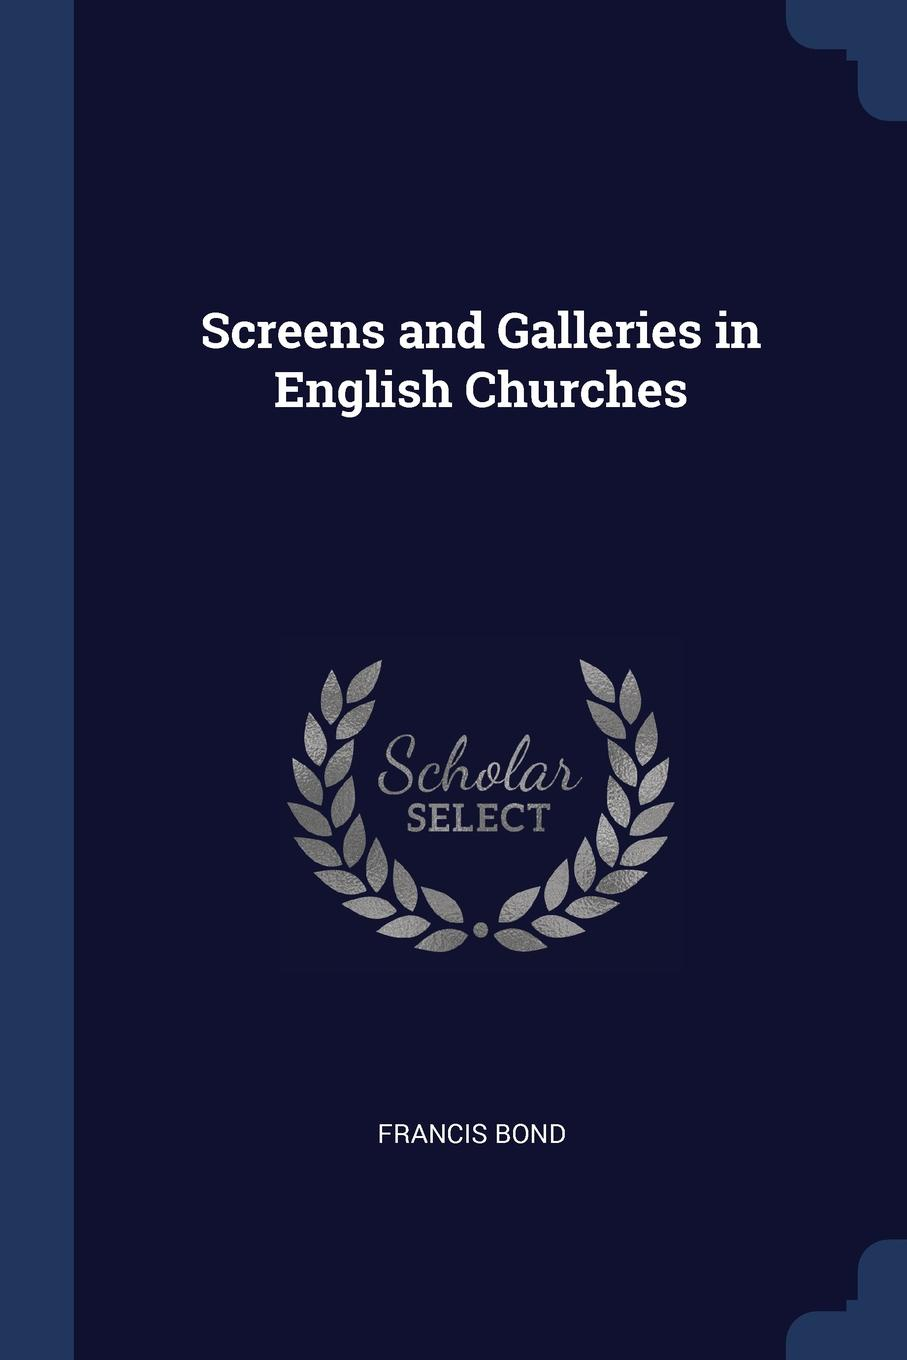 Screens and Galleries in English Churches. Francis Bond